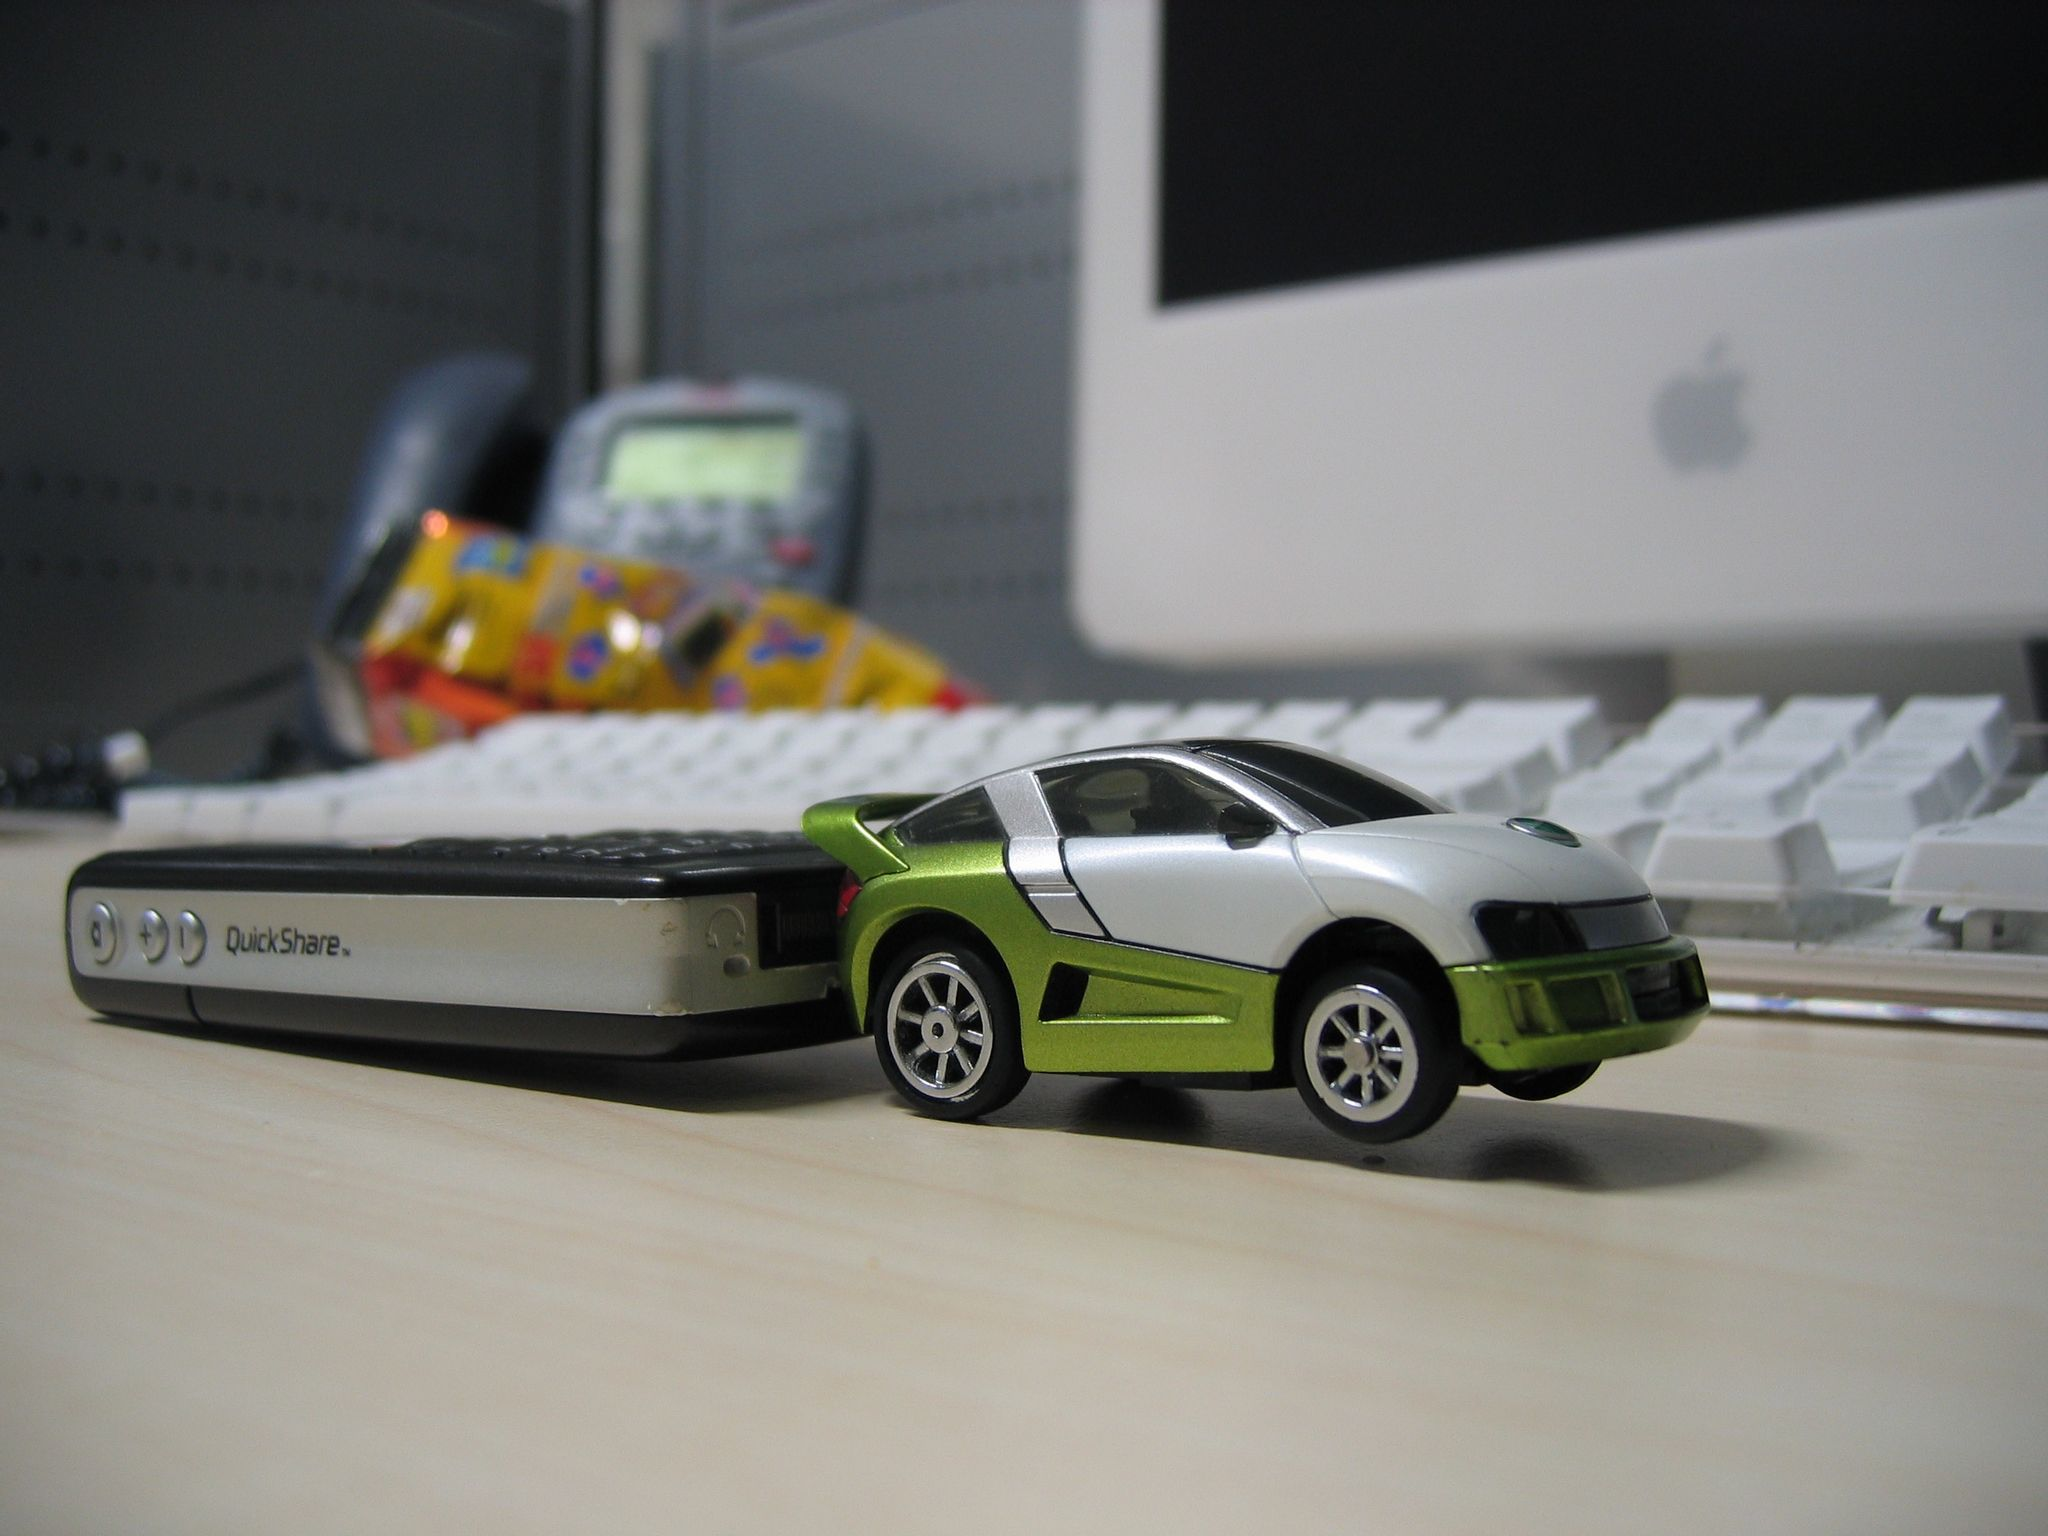 A tiny green and white toy car that's plugged into the bottom of a mobile phone.